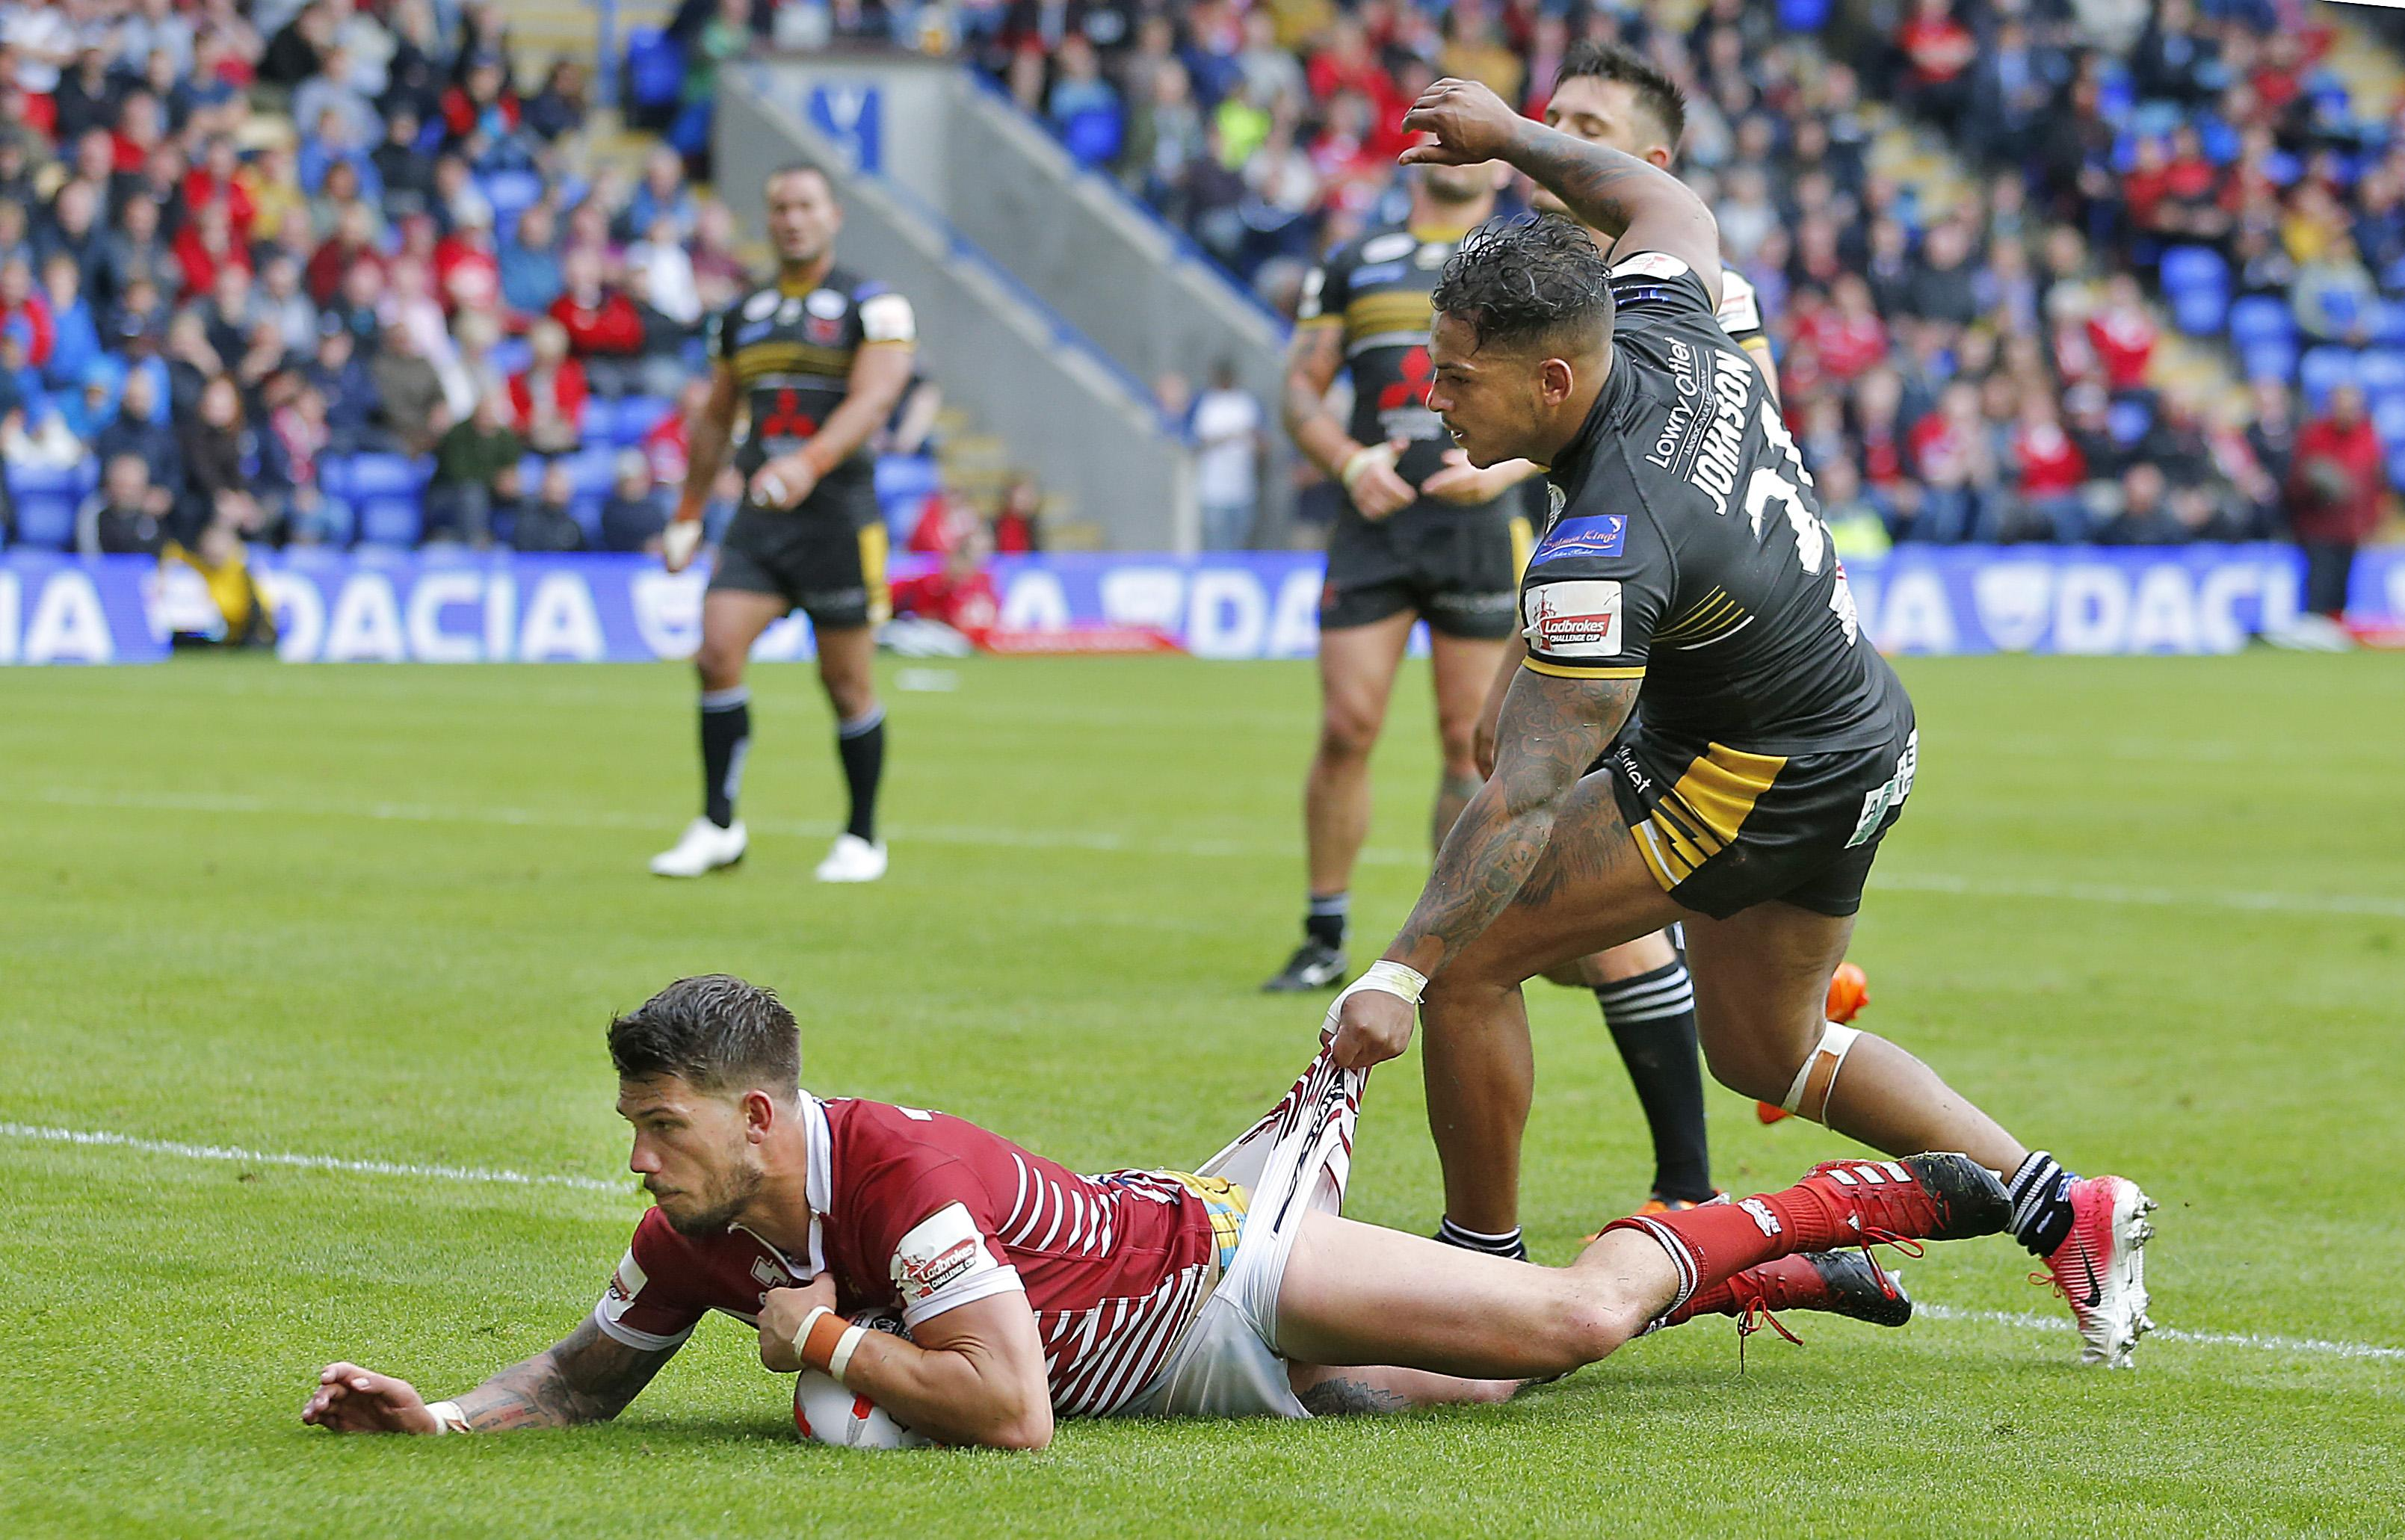 Gildart had interest from the NRL and St Helens